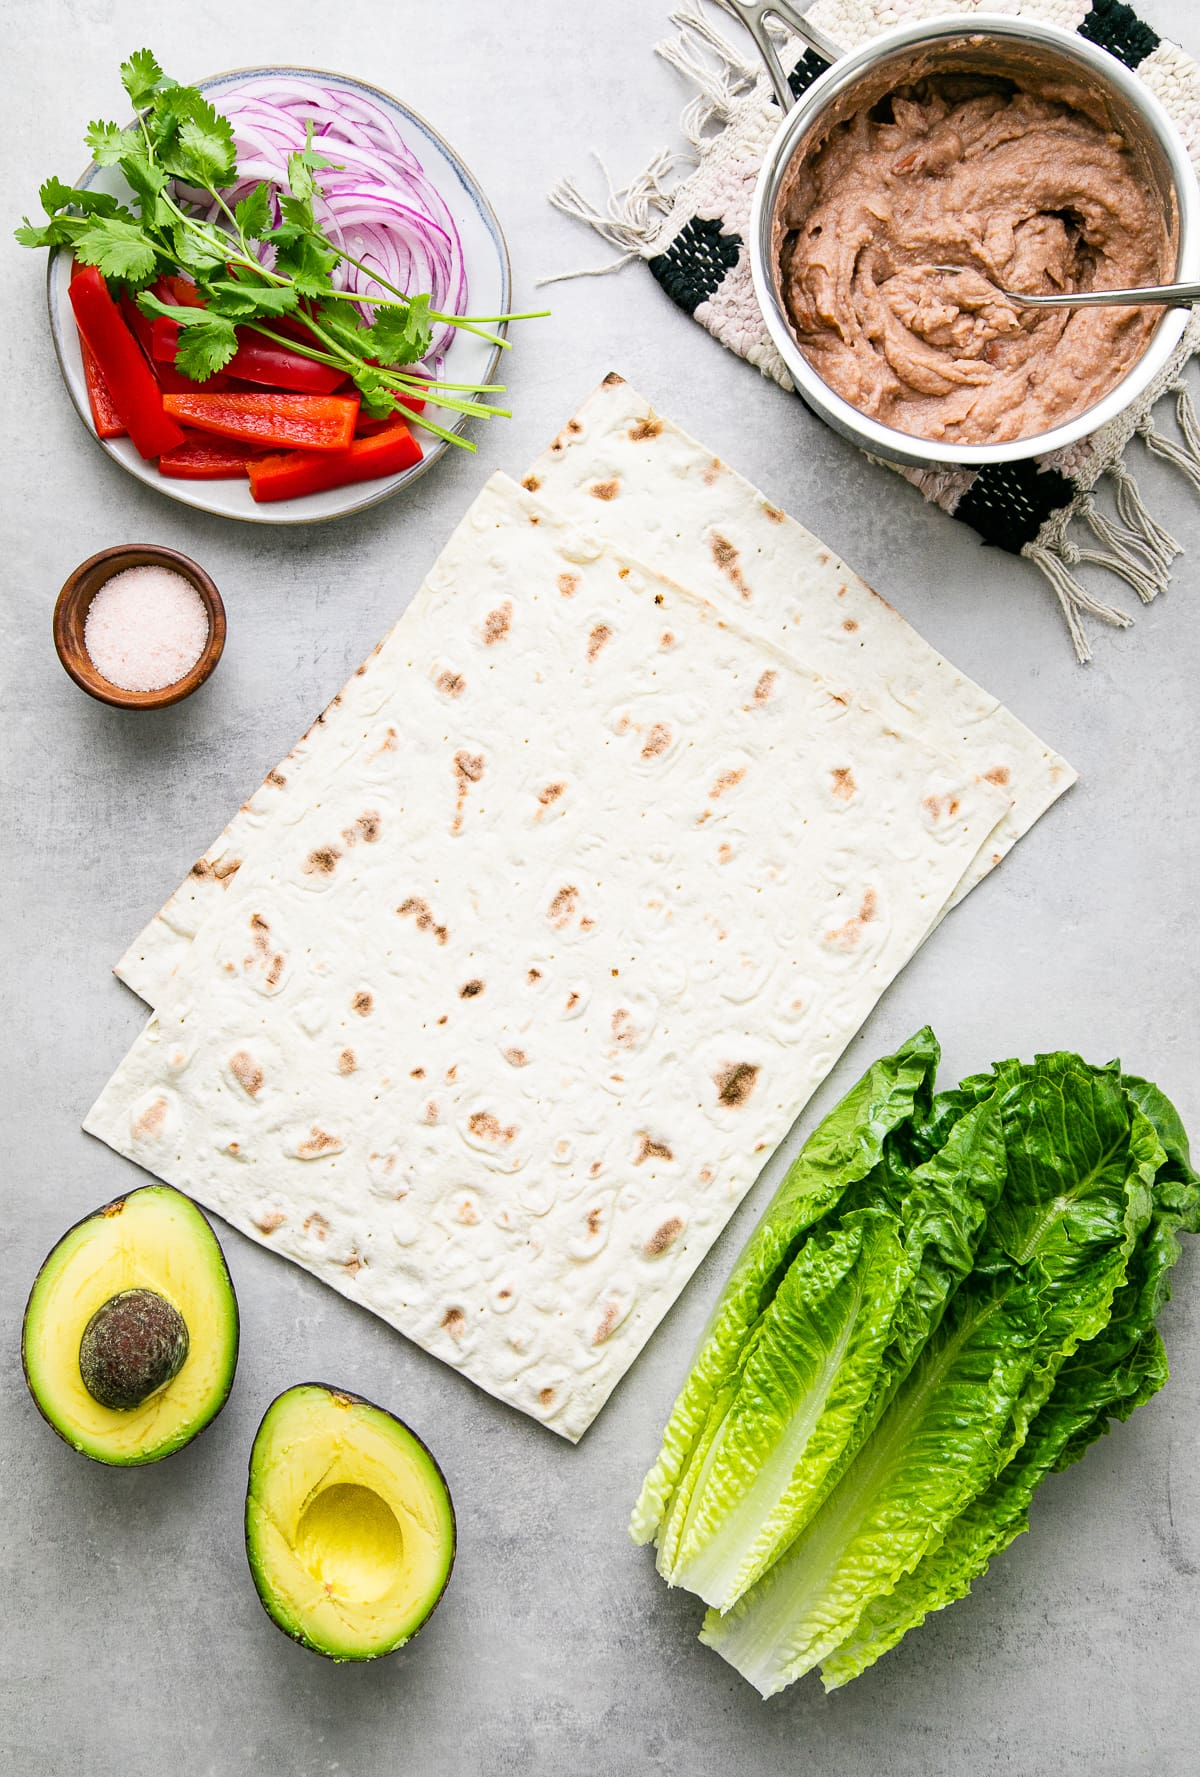 top down view of ingredients used to make refried bean avocado lavash wraps.